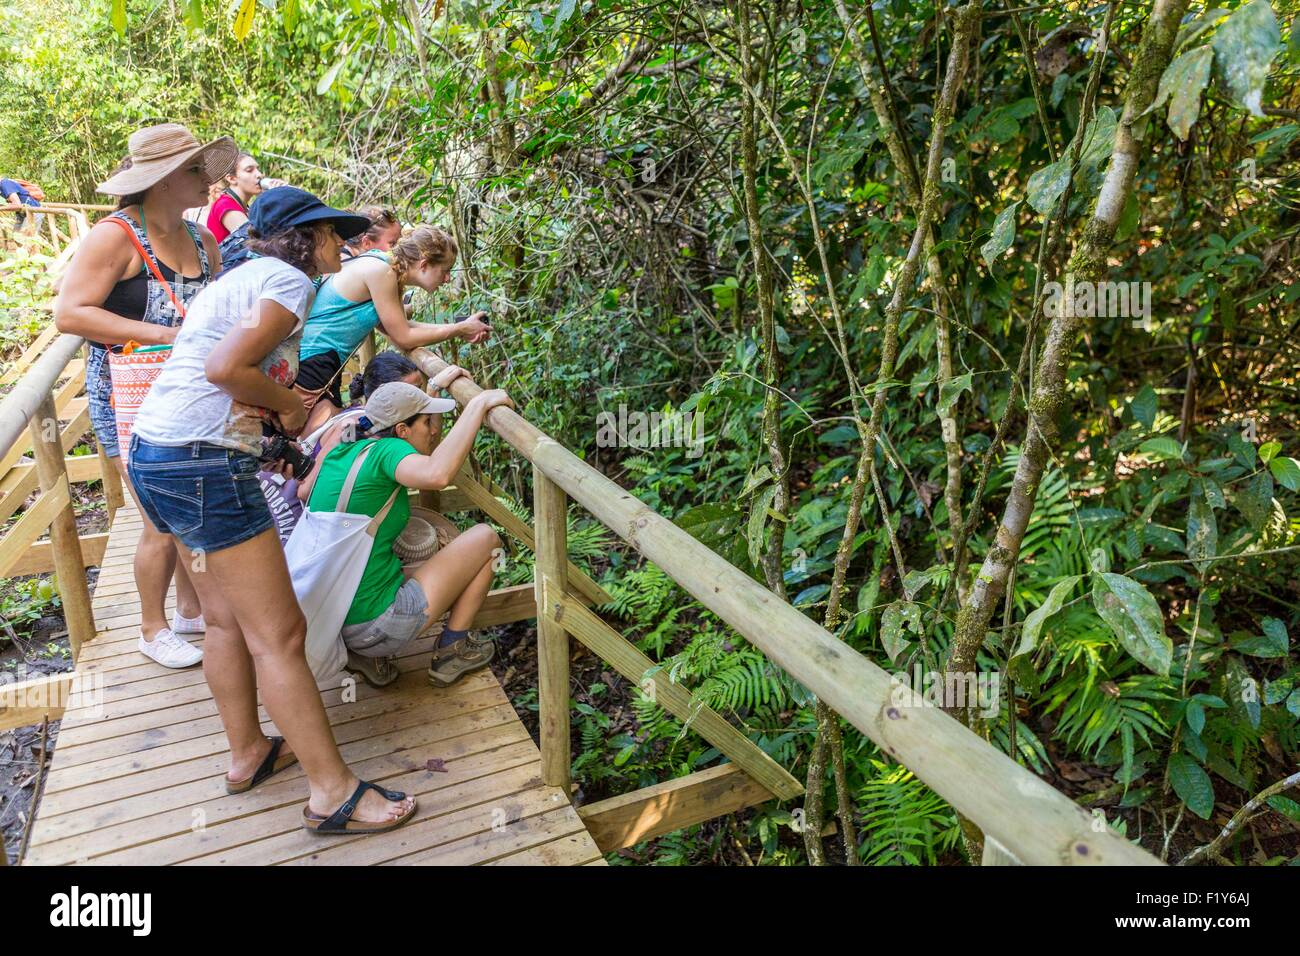 Costa Rica, Puntarenas province, Manuel Antonio National Park, tourists observing animals Stock Photo